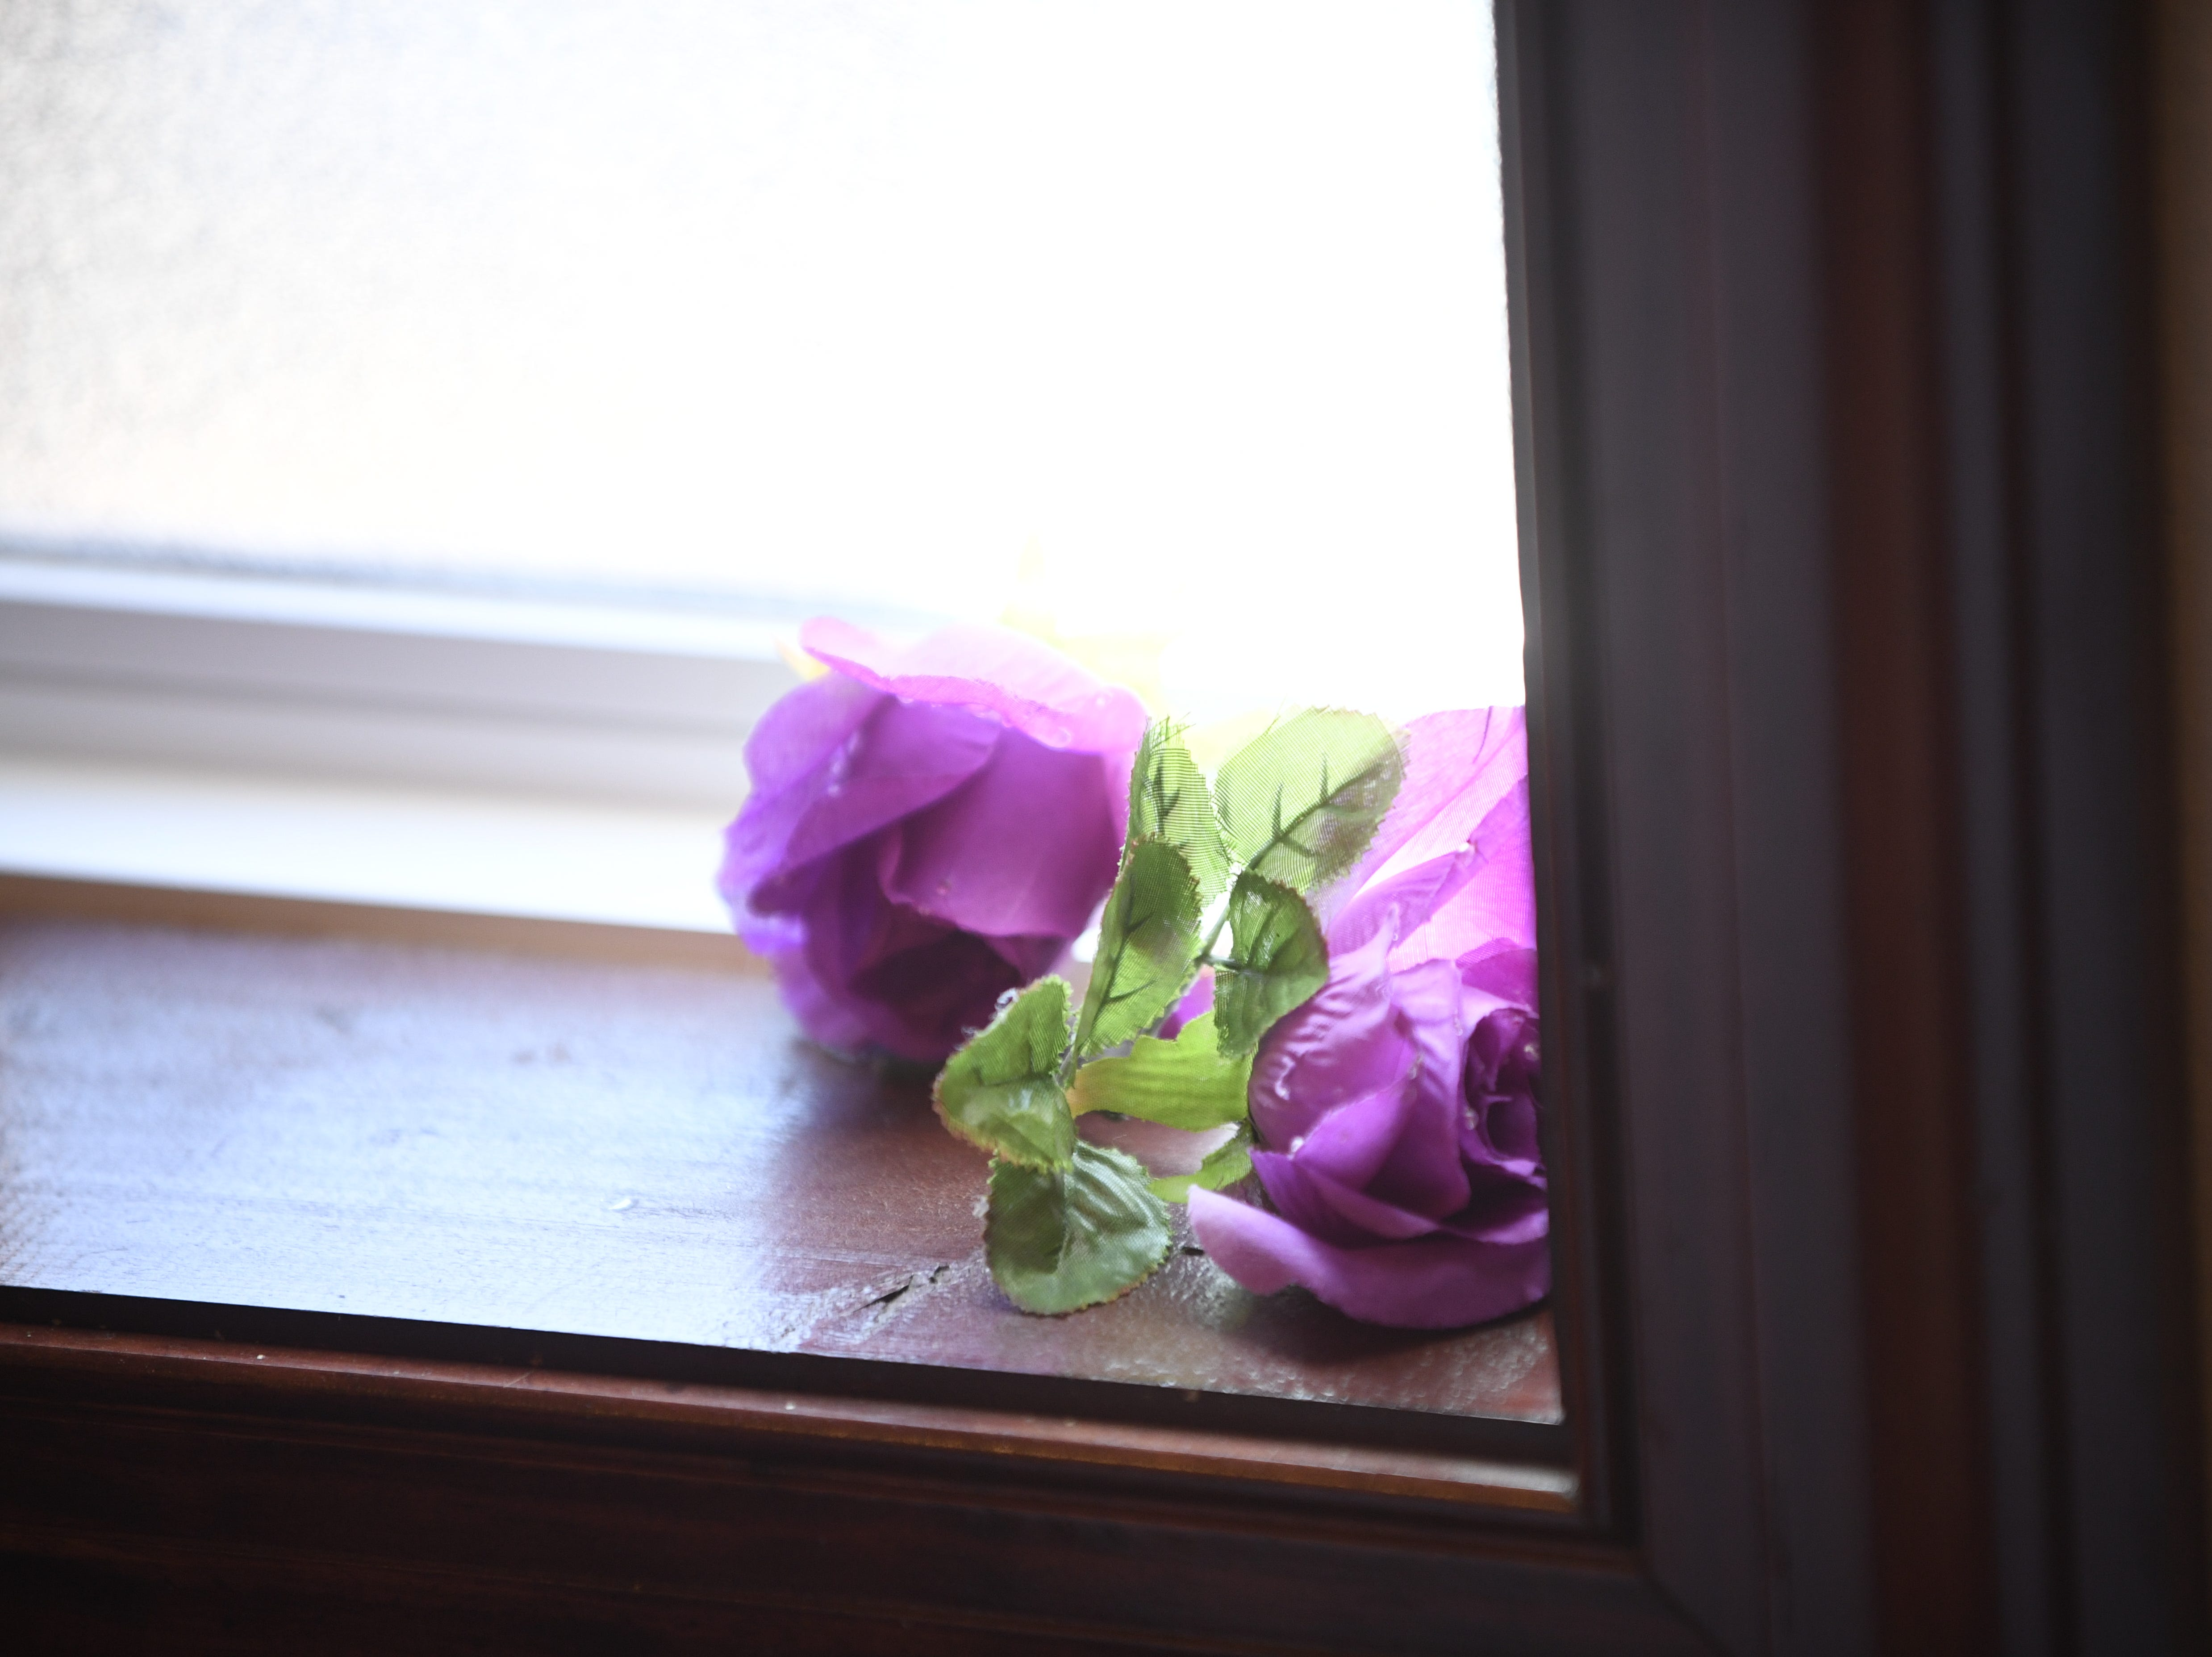 Flowers lay in the window at Mt. Pleasant Church during their Black History Month event, in Pinson, Tenn. Feb 24, 2019.